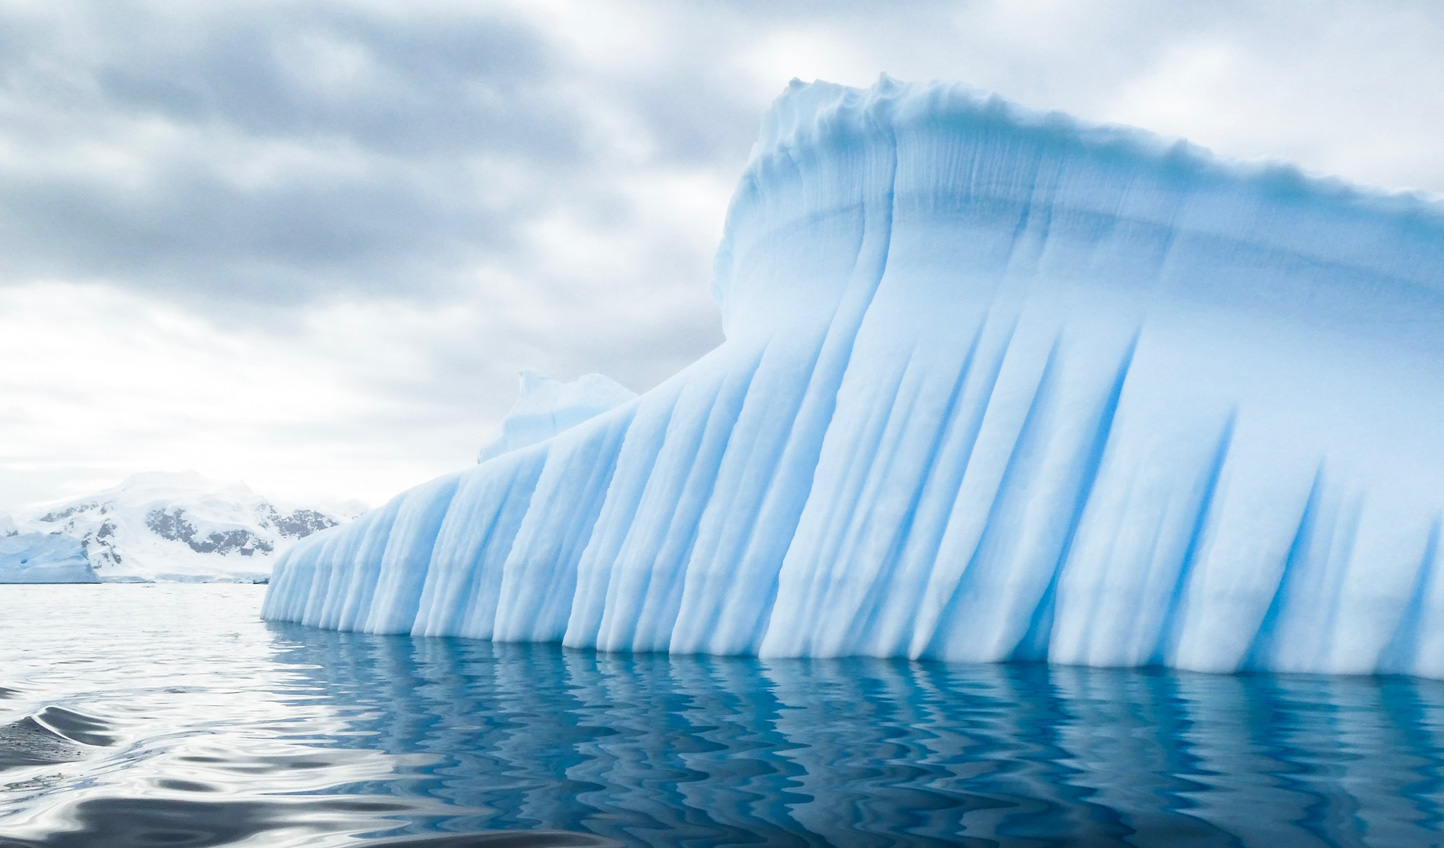 Drift between towering icebergs